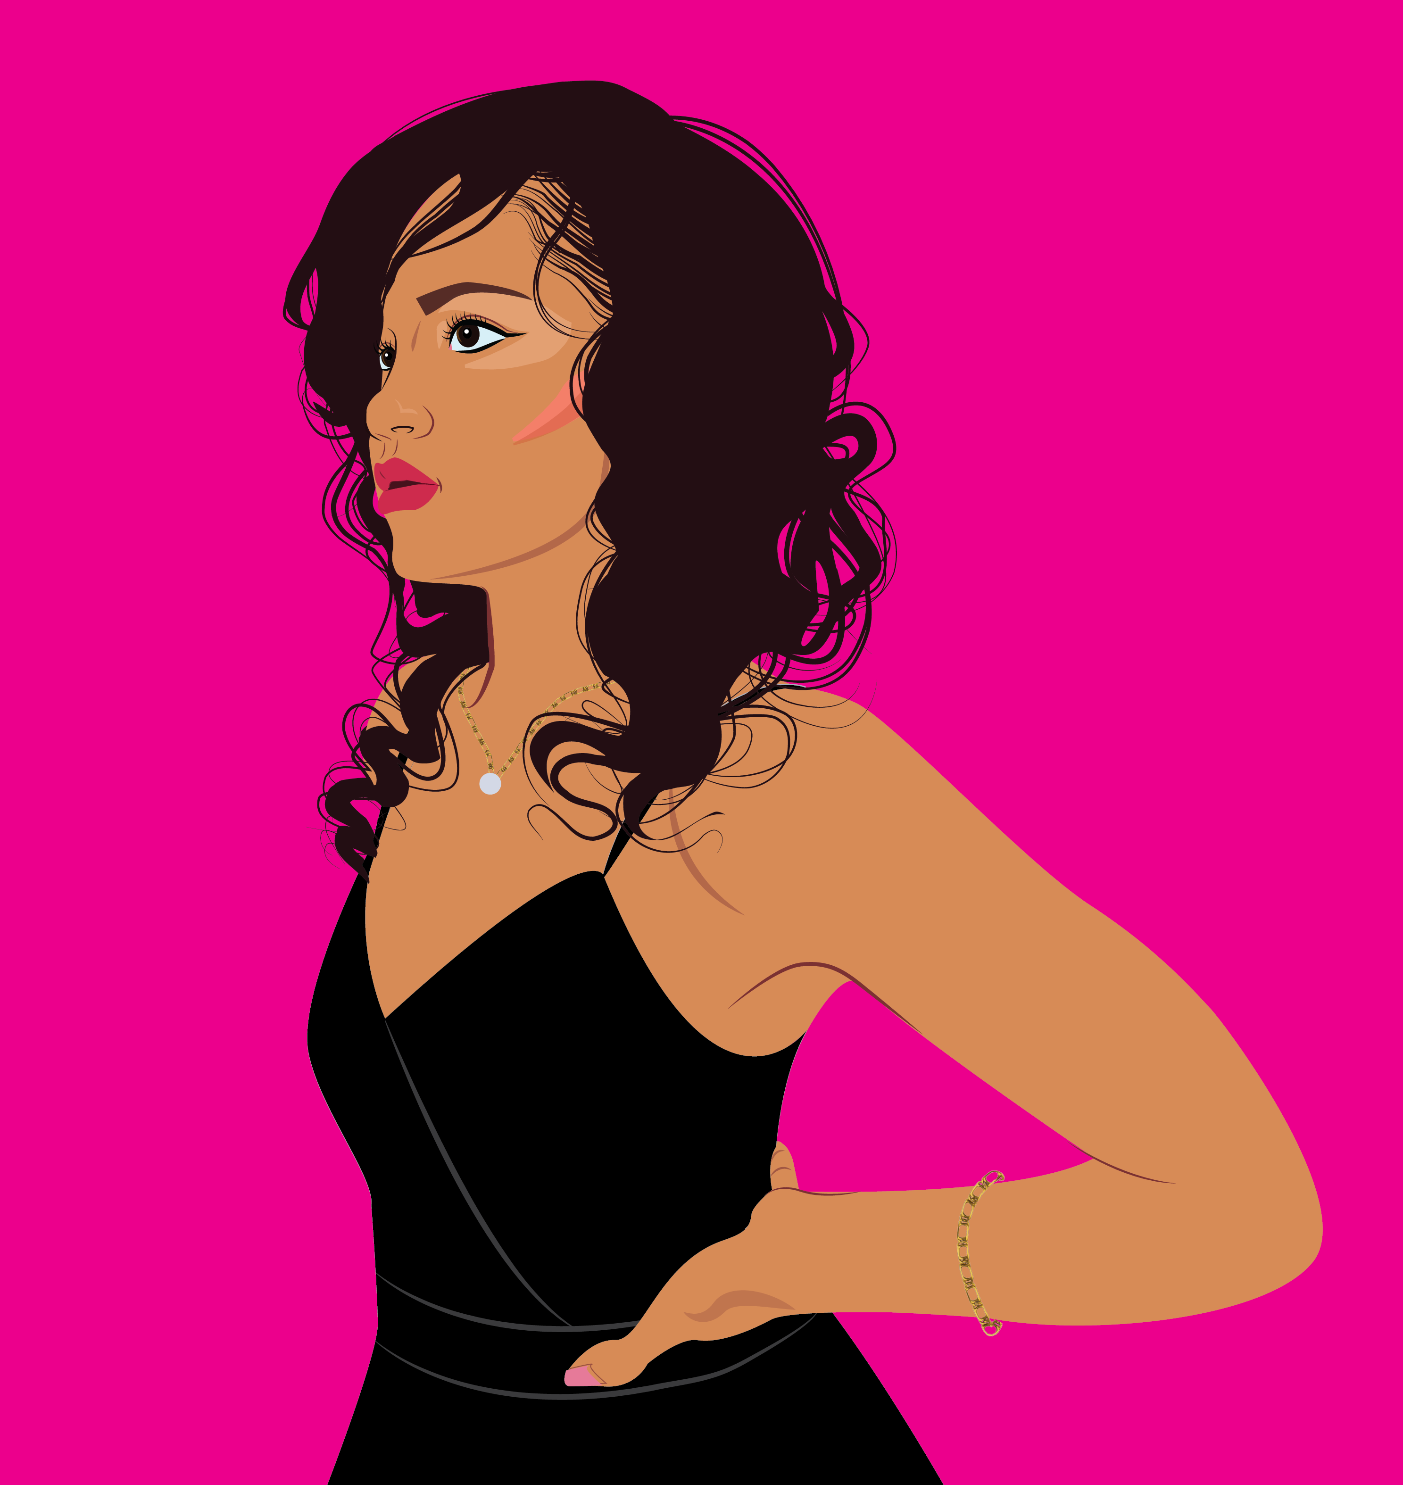 Brooklynn_VectorPortrait_hotpink-01_edited